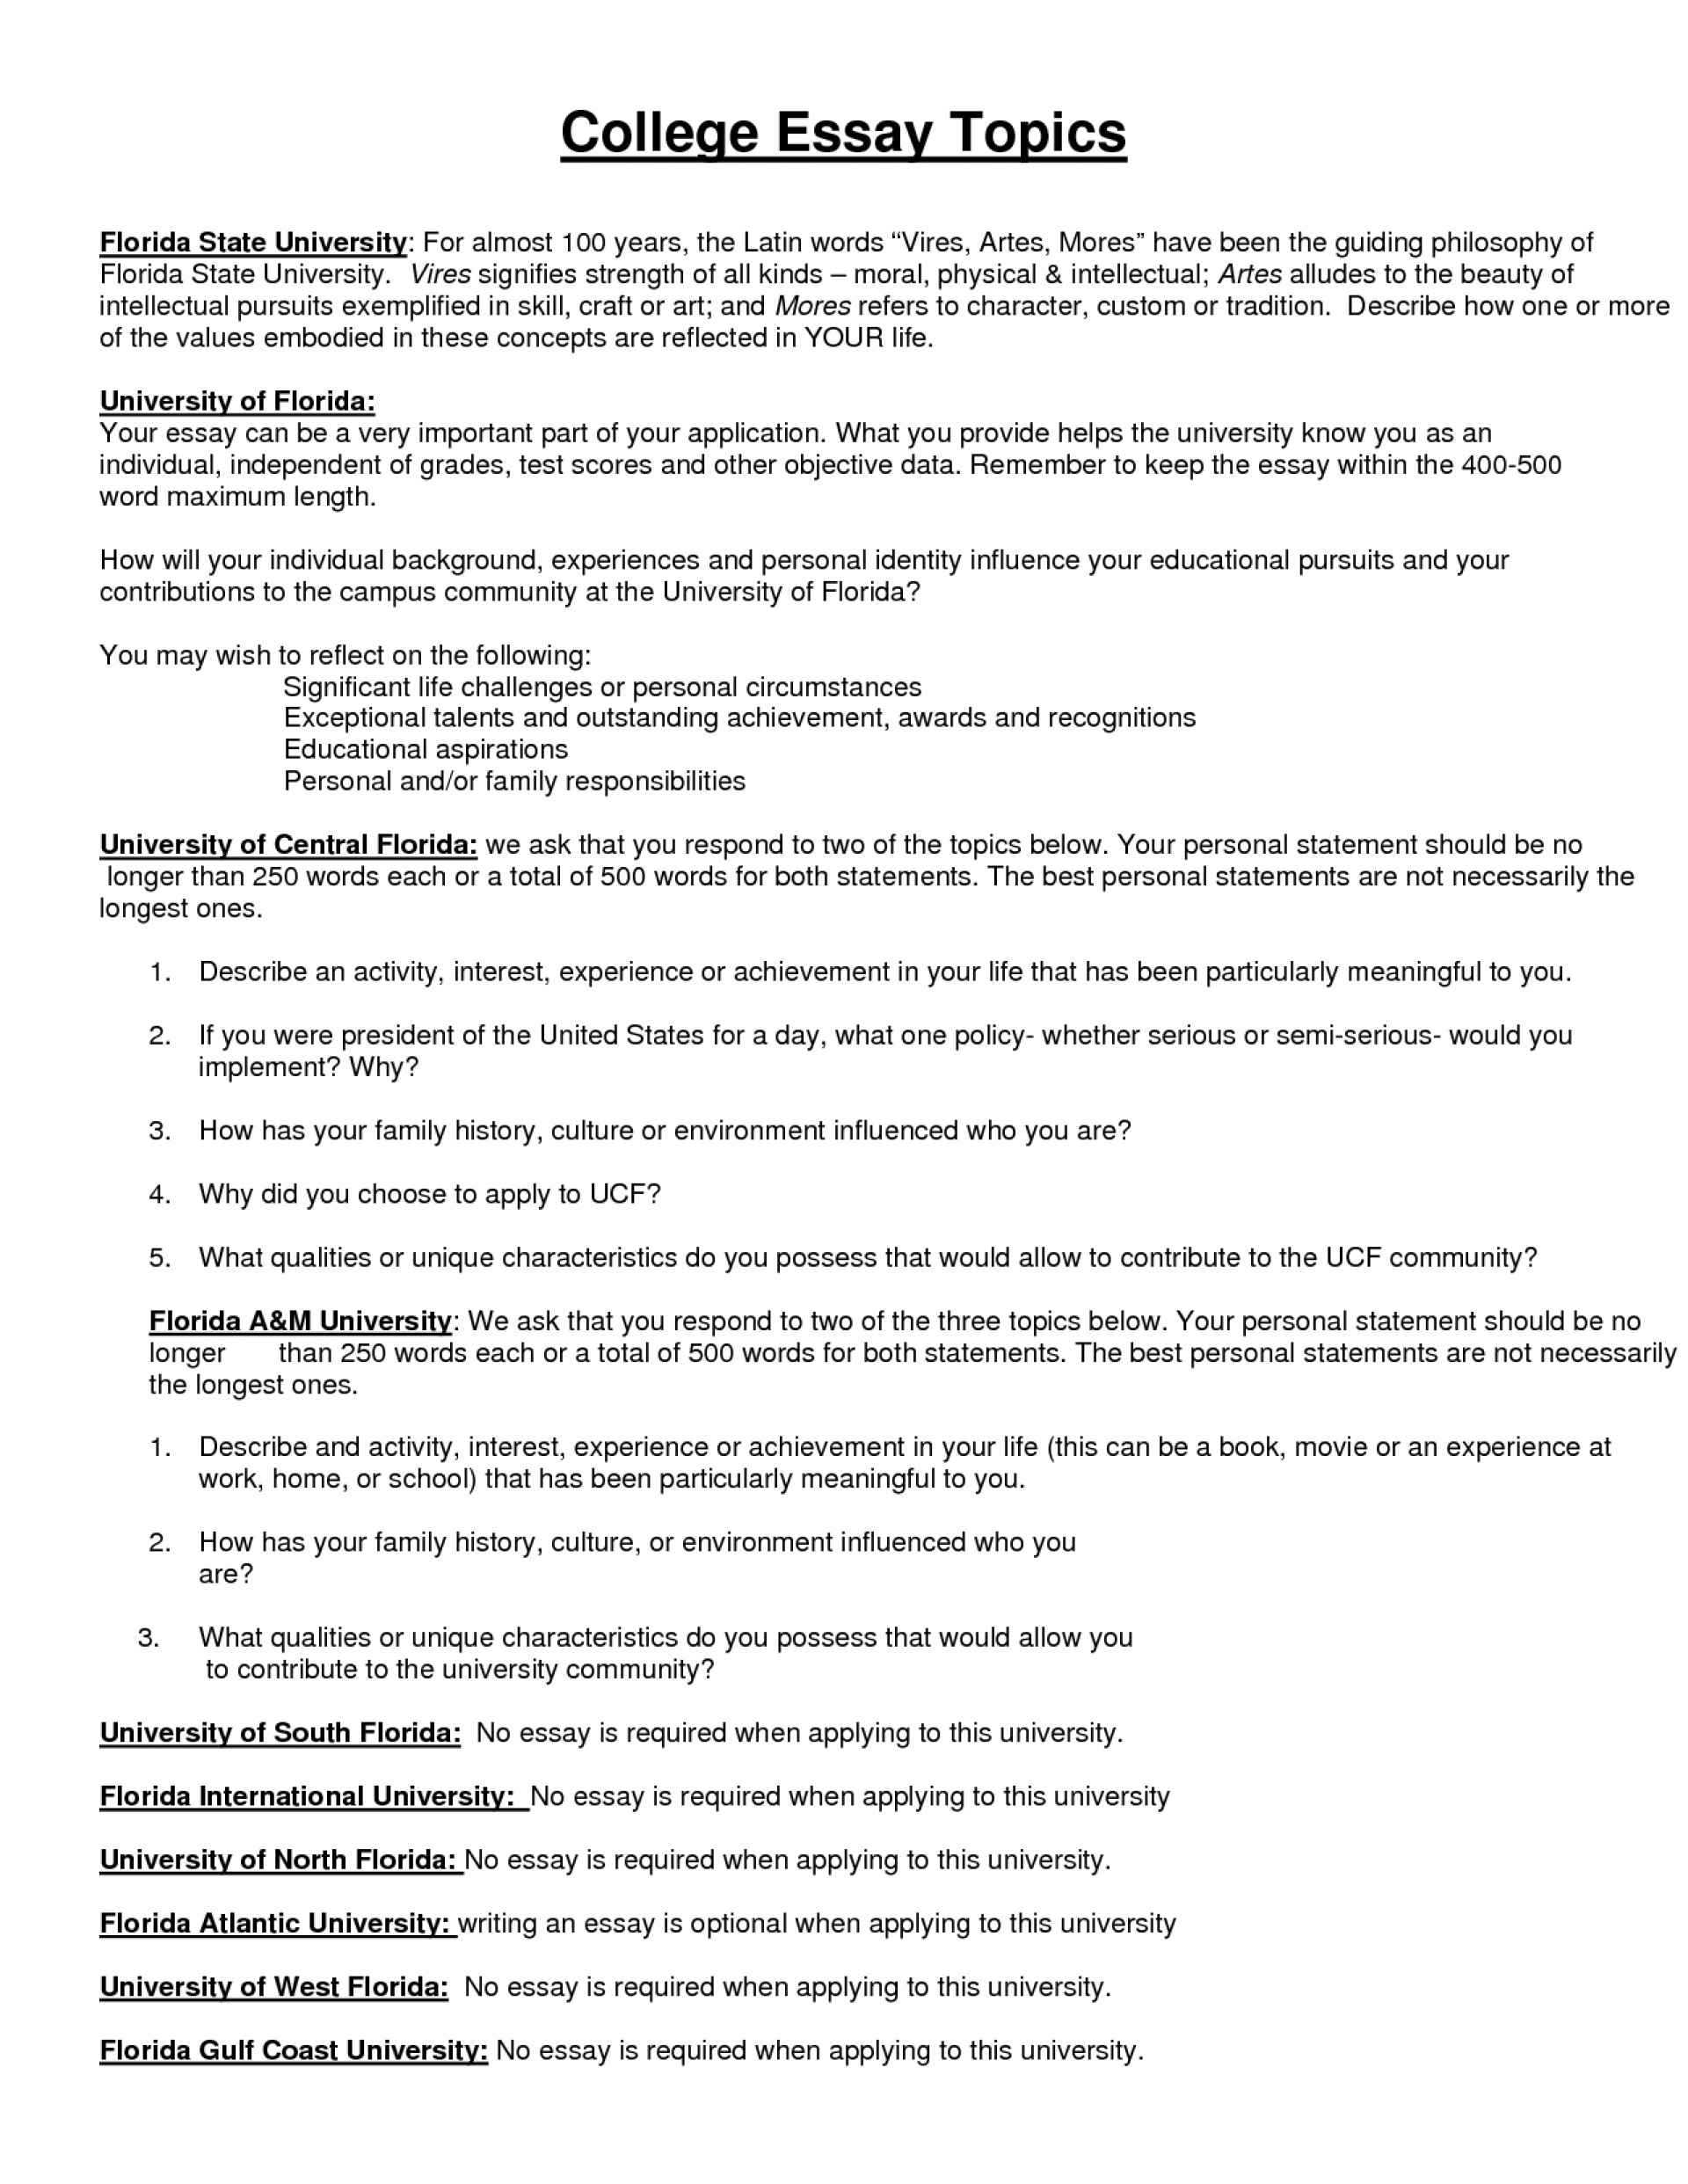 003 Essay Example College Questions Frightening Crazy Application Harvard Prompts 2017 Mit Prompt 1920